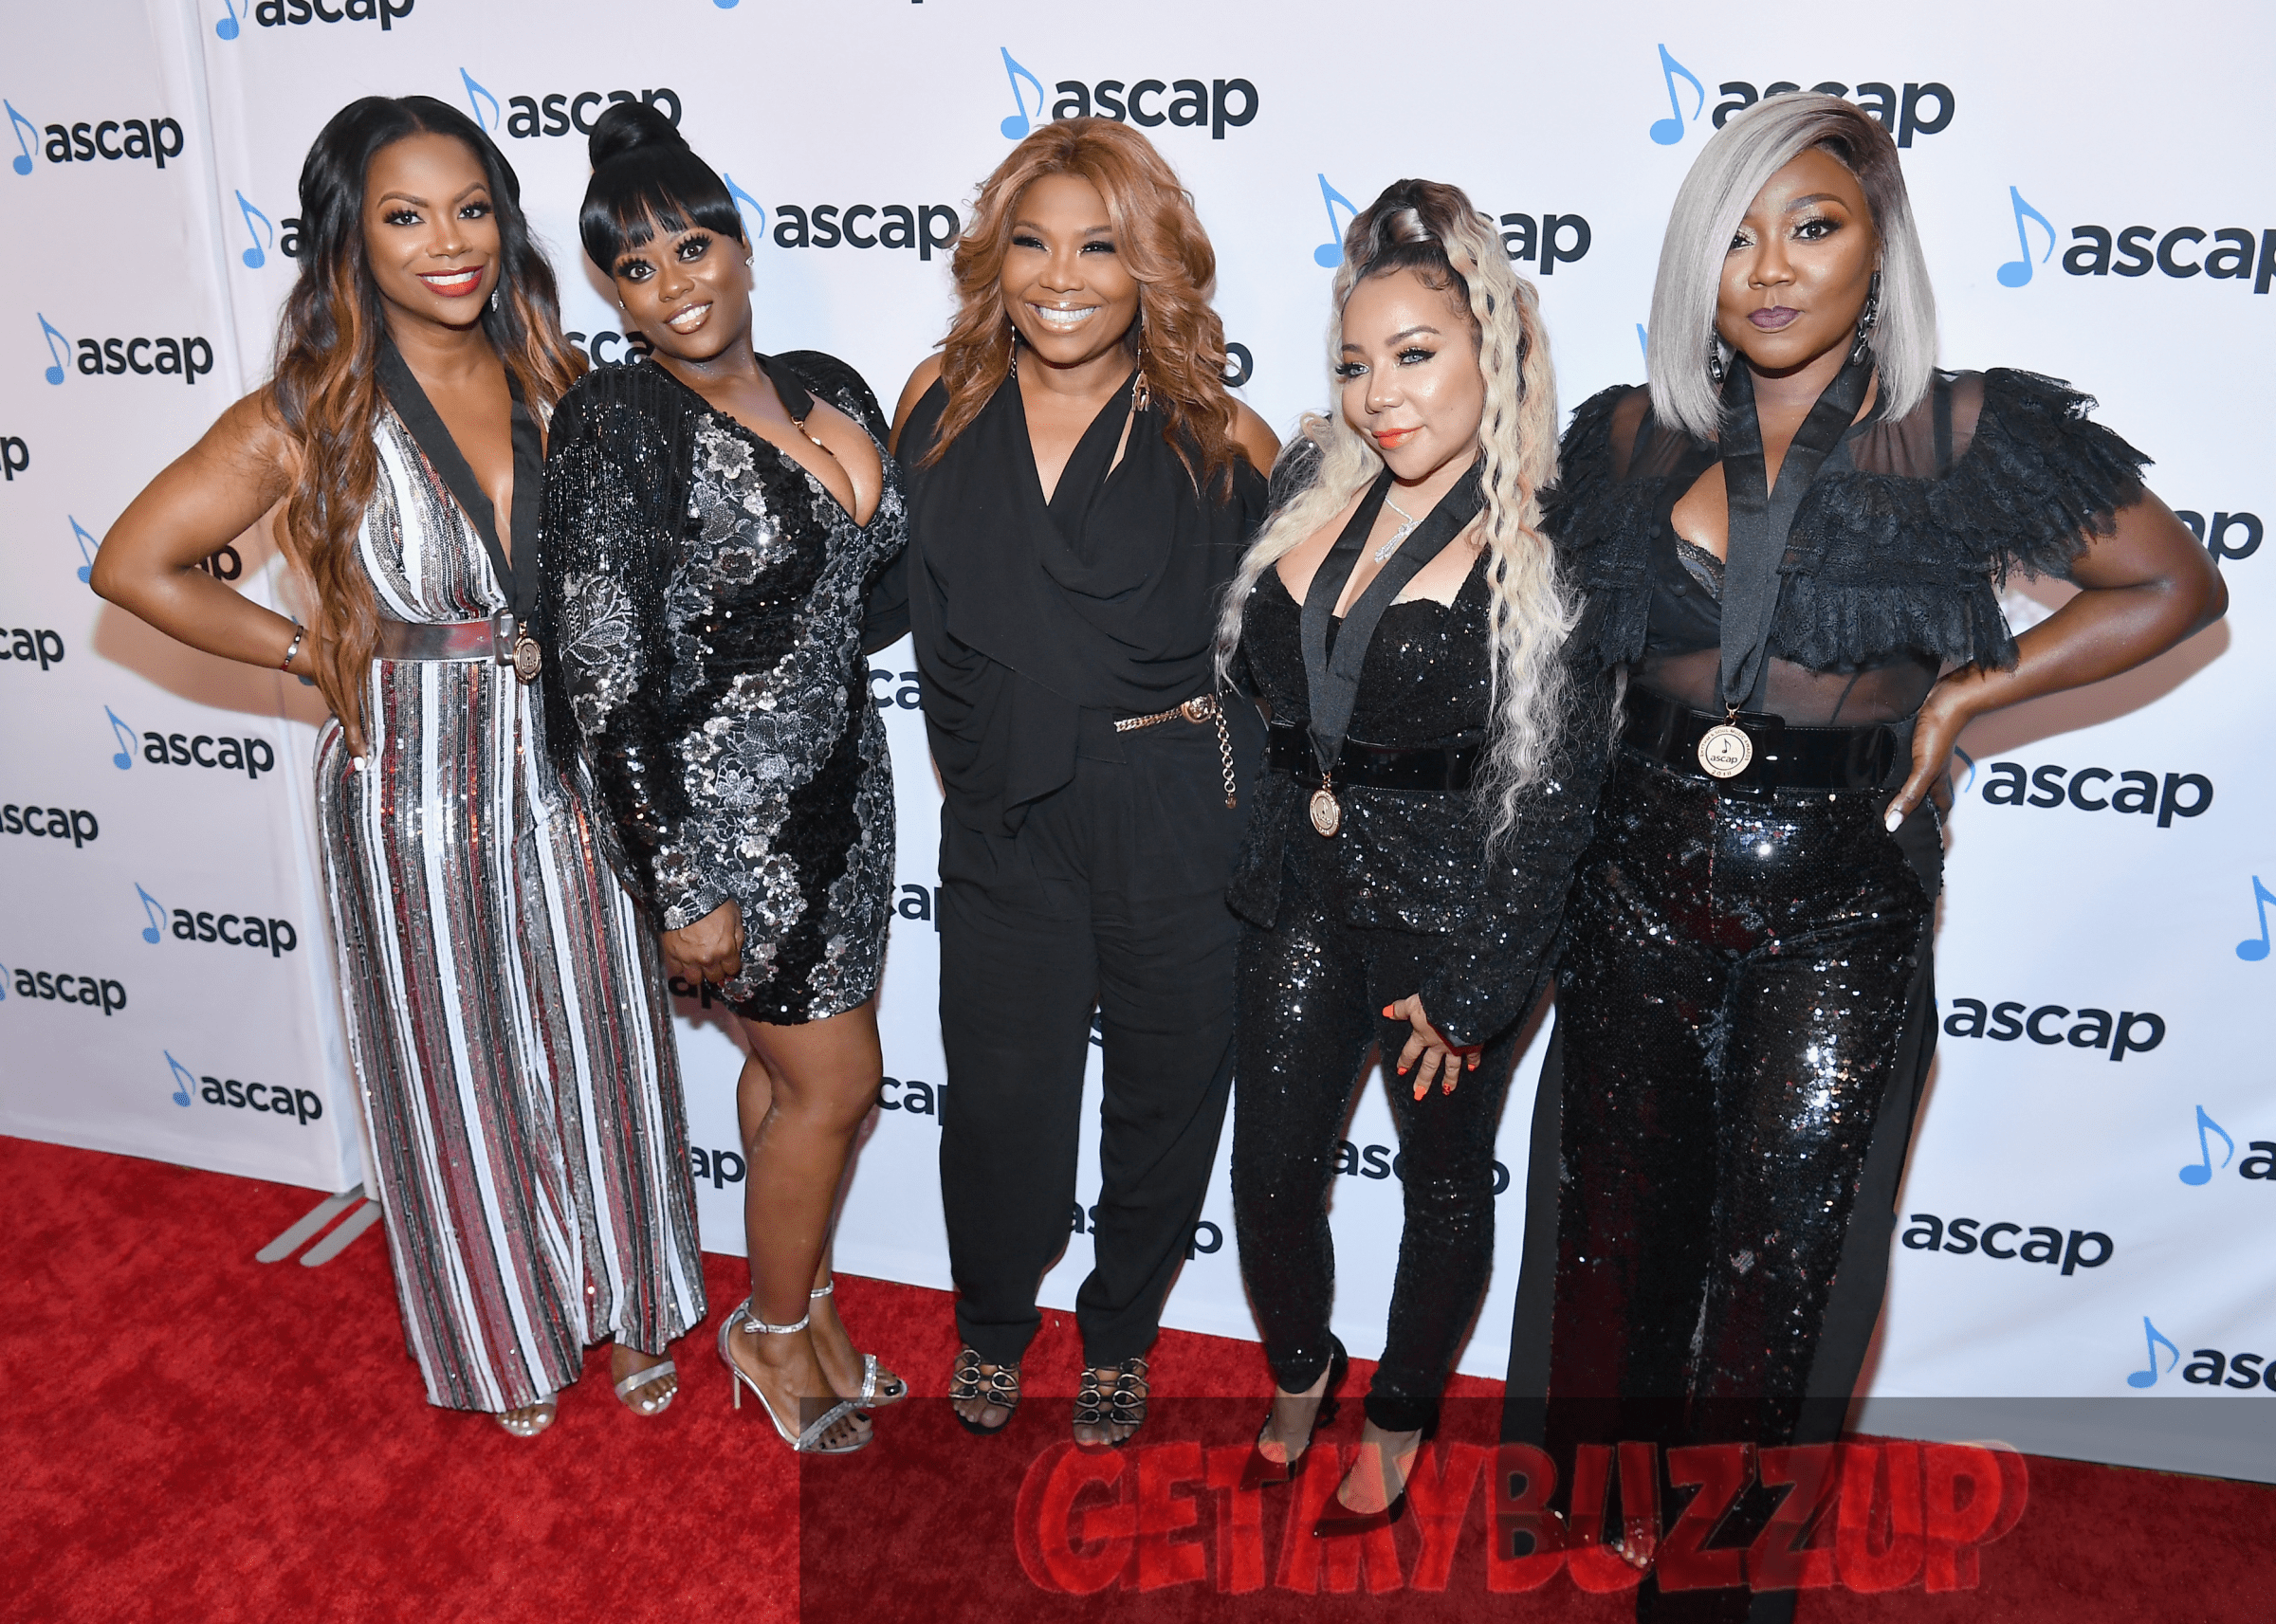 XSCAPE HONORED WITH ASCAP GOLDEN NOTE AWARD;CHART-TOPPING RAPPERS MIGOS ACCEPT ASCAP VANGUARD AWARD AT 2018 ASCAP RHYTHM & SOUL AWARDS [PHOTOS]